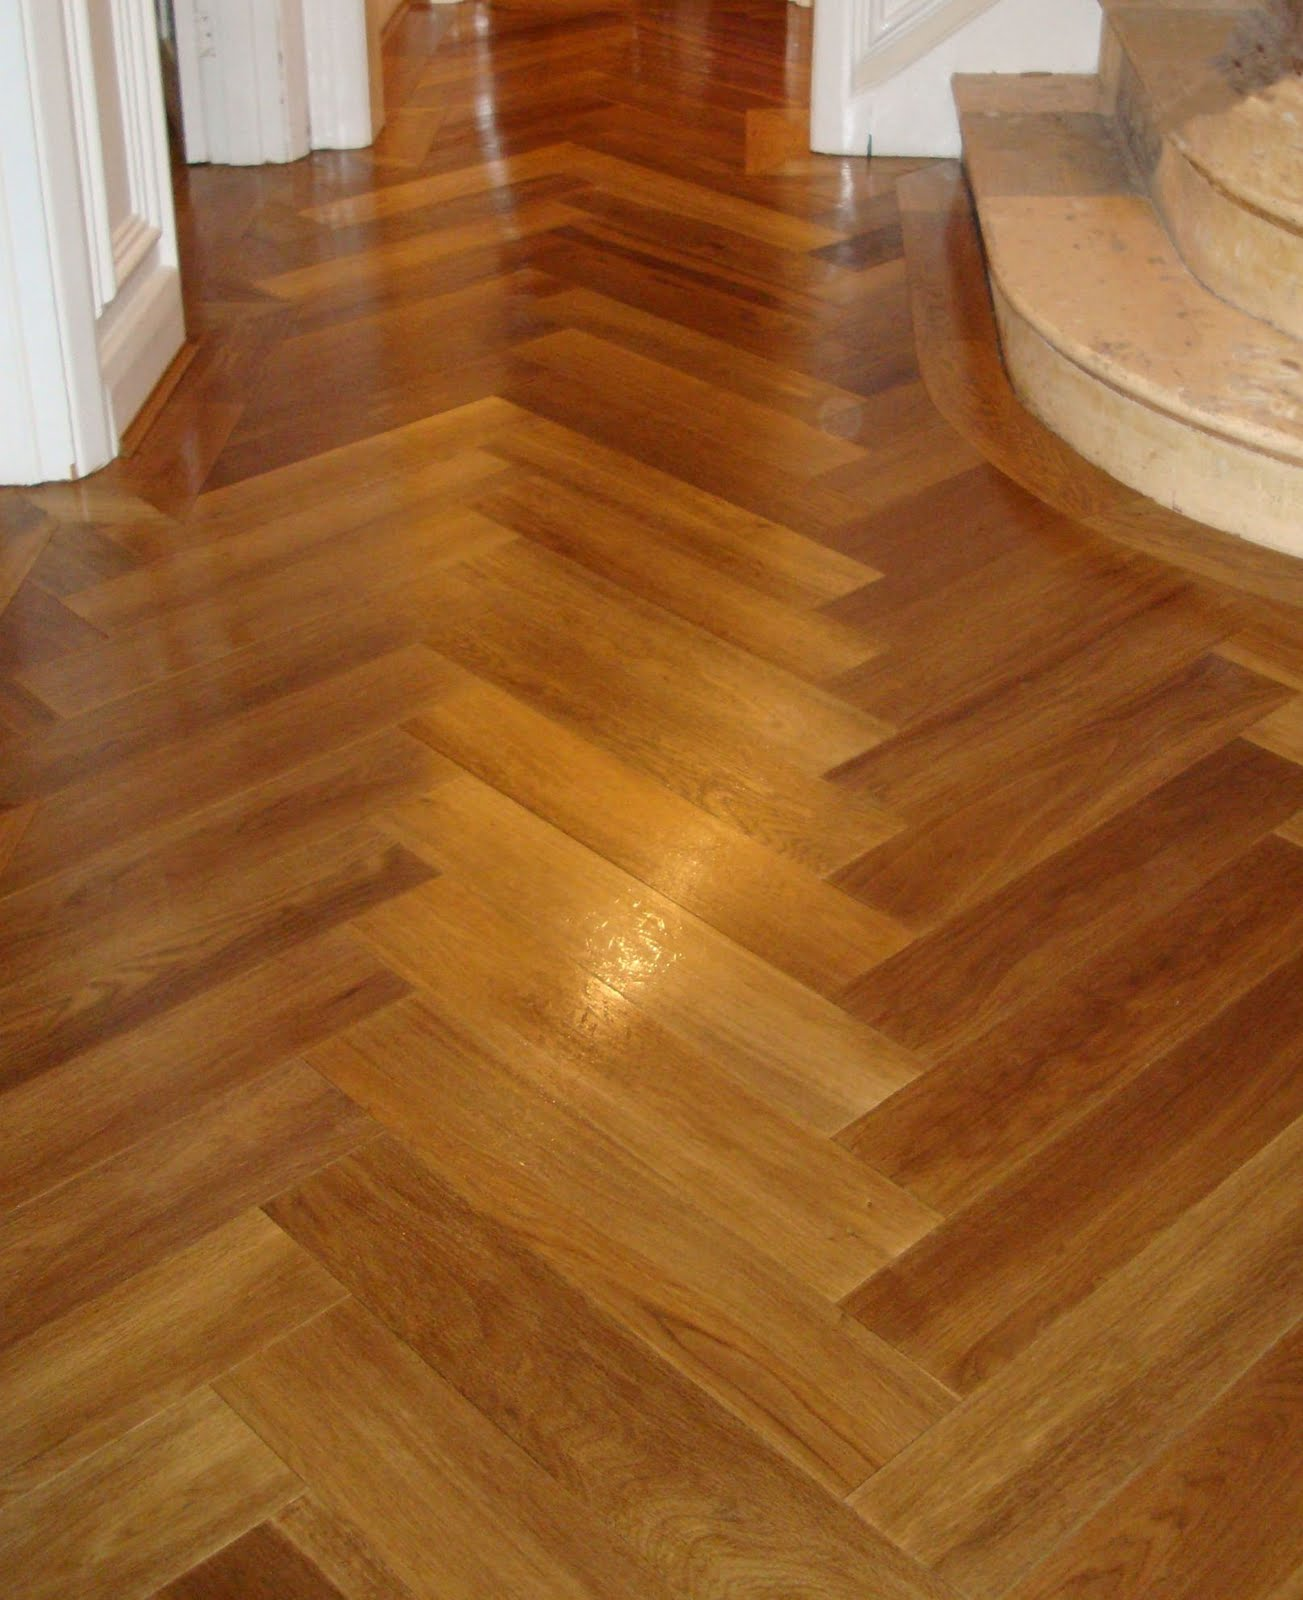 Hardwood floor pattern design ideas joy studio design for Hardwood floor ideas pictures